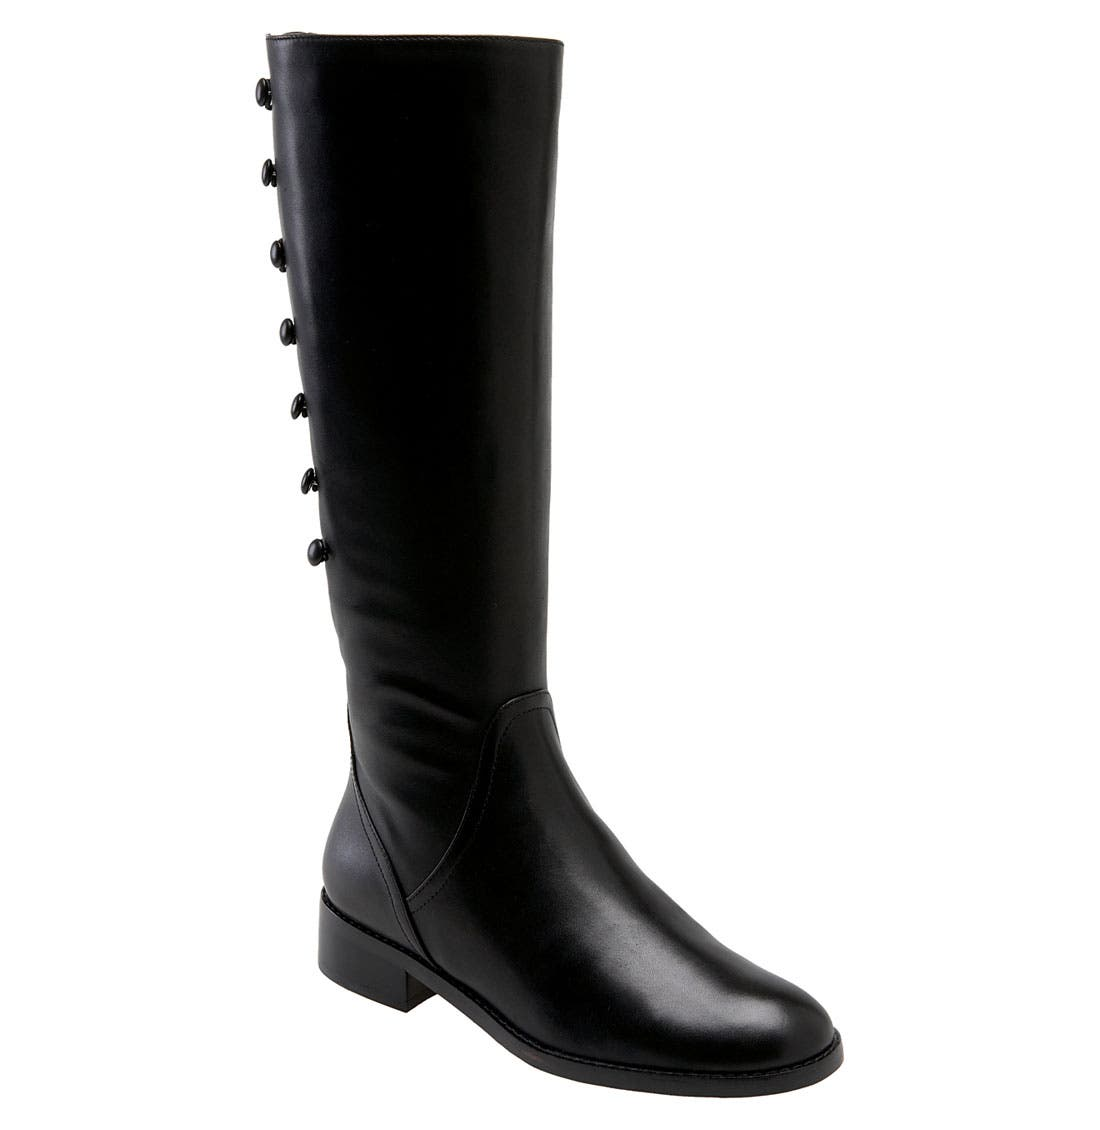 Alternate Image 1 Selected - Sanzia 'Vintage' Flat Boot